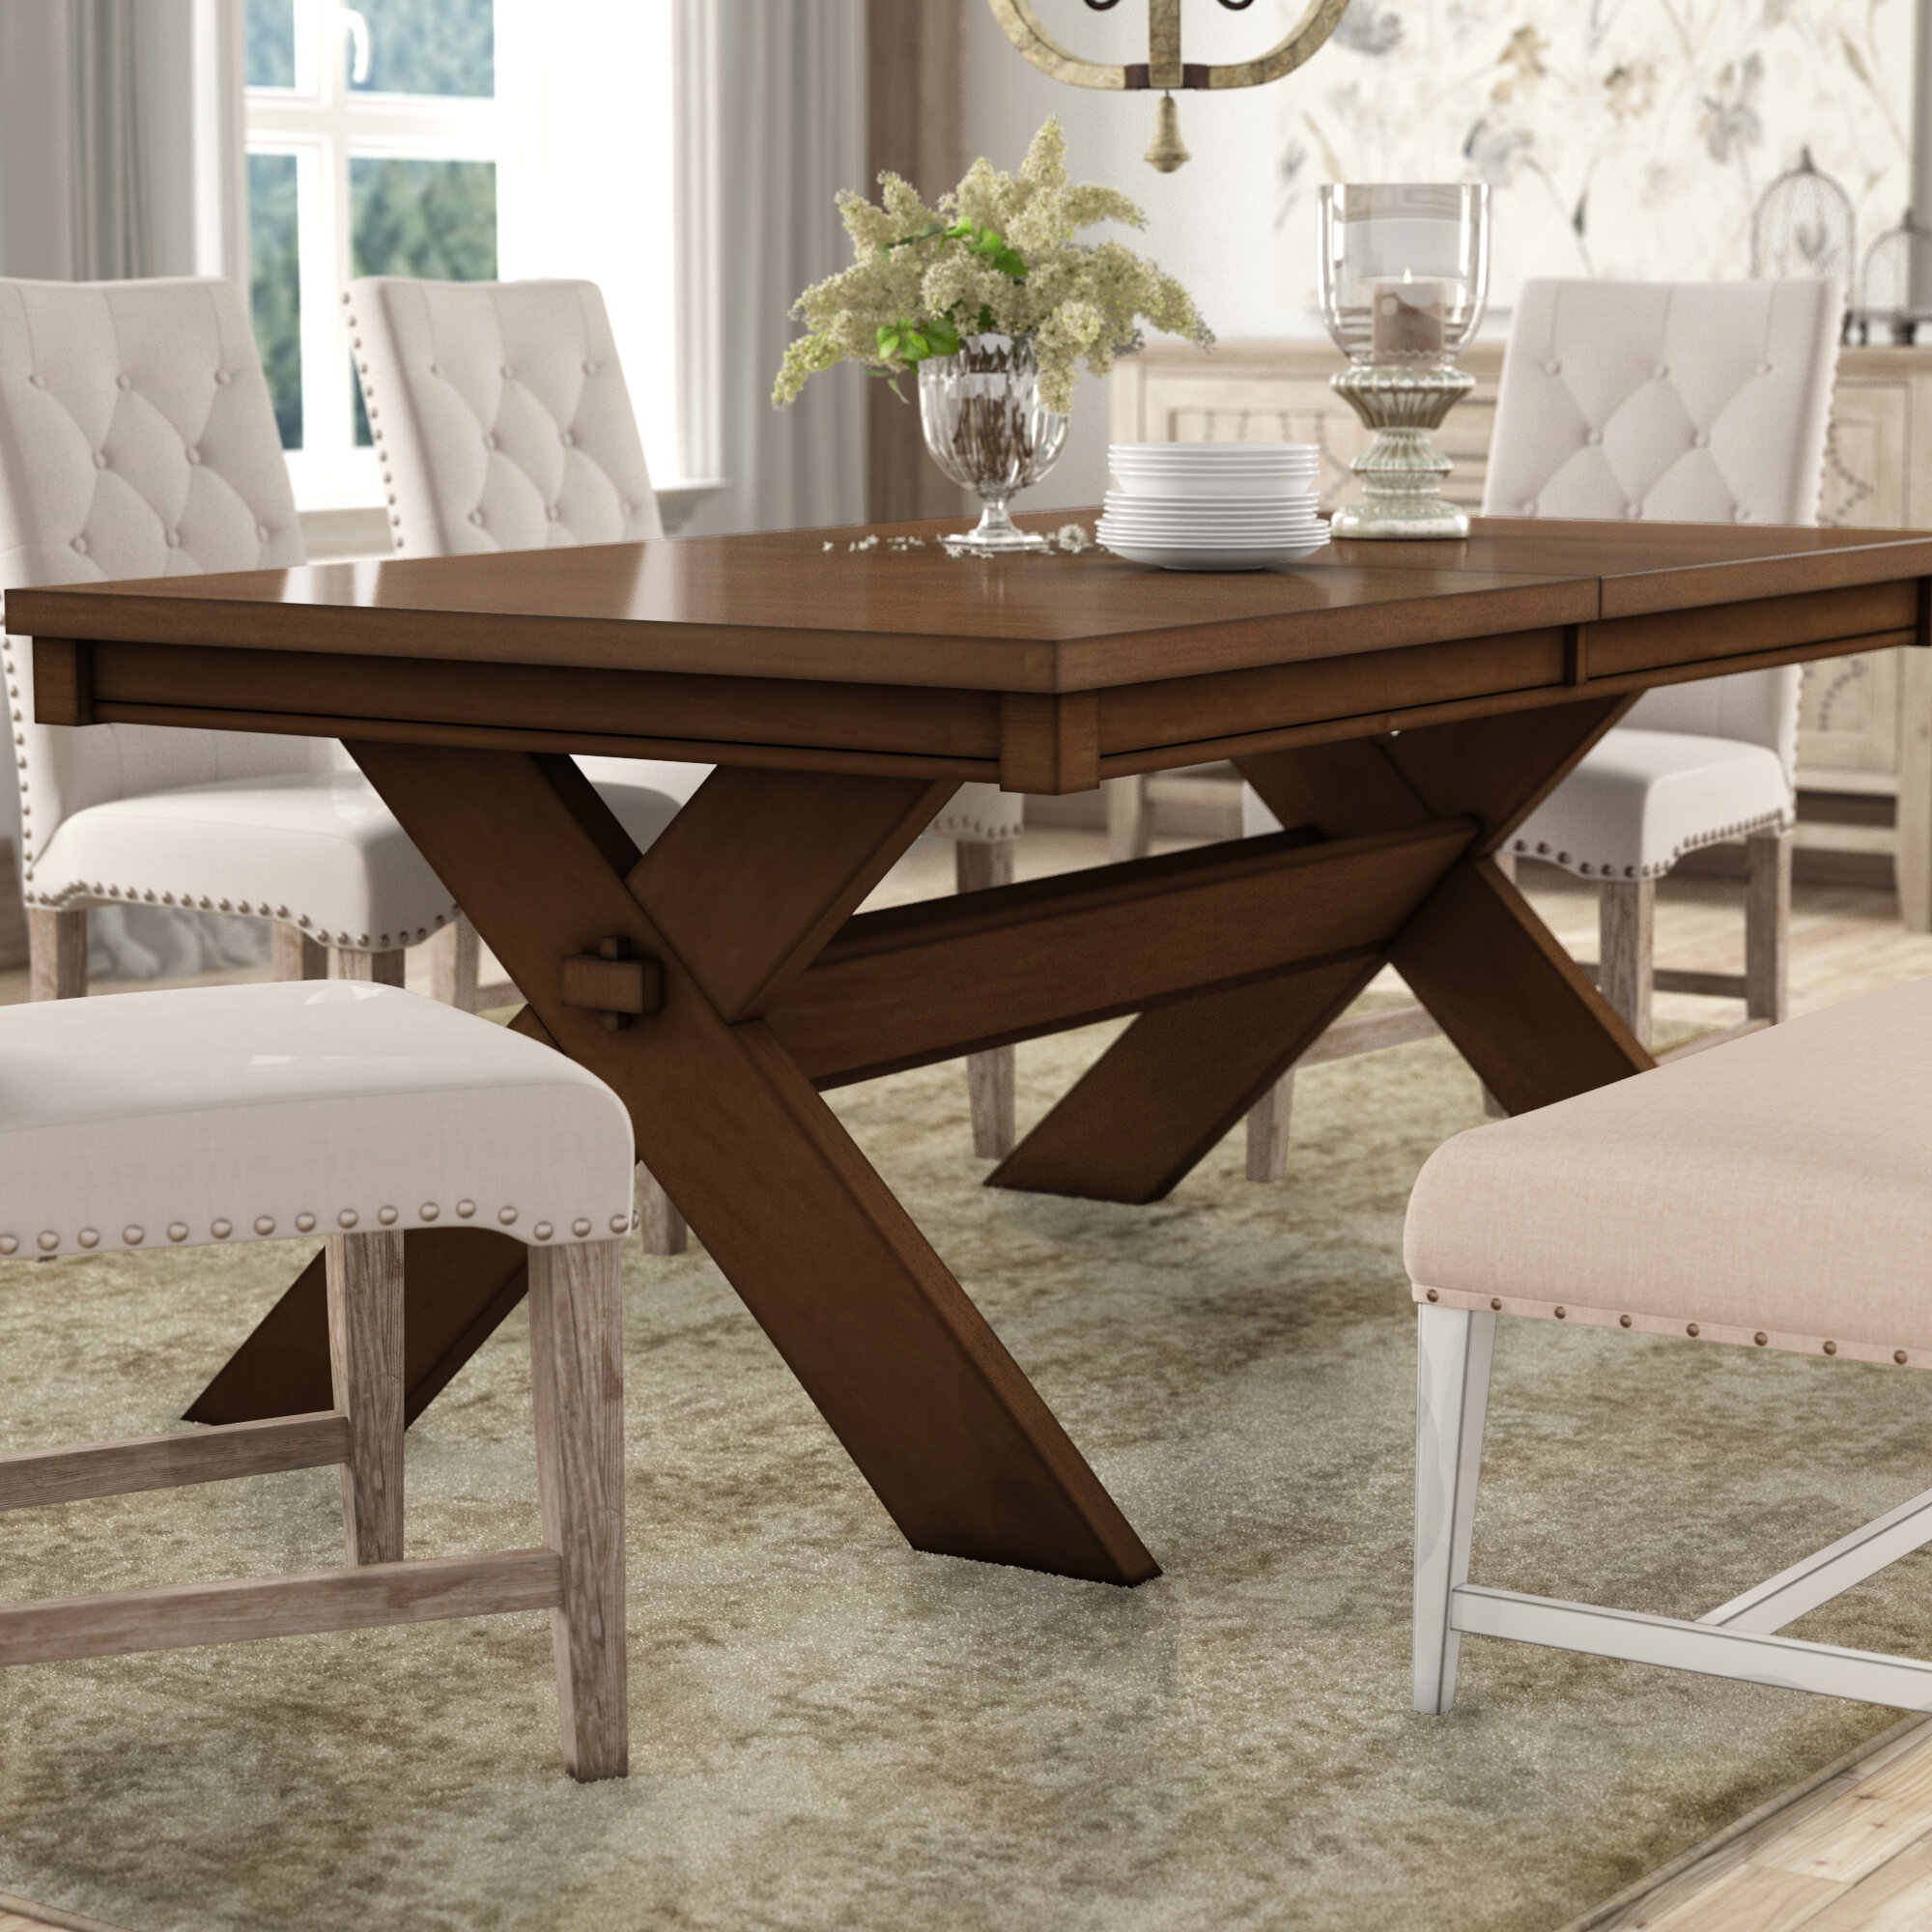 Laurel foundry modern farmhouse isabell acacia butterfly leaf dining table reviews wayfair